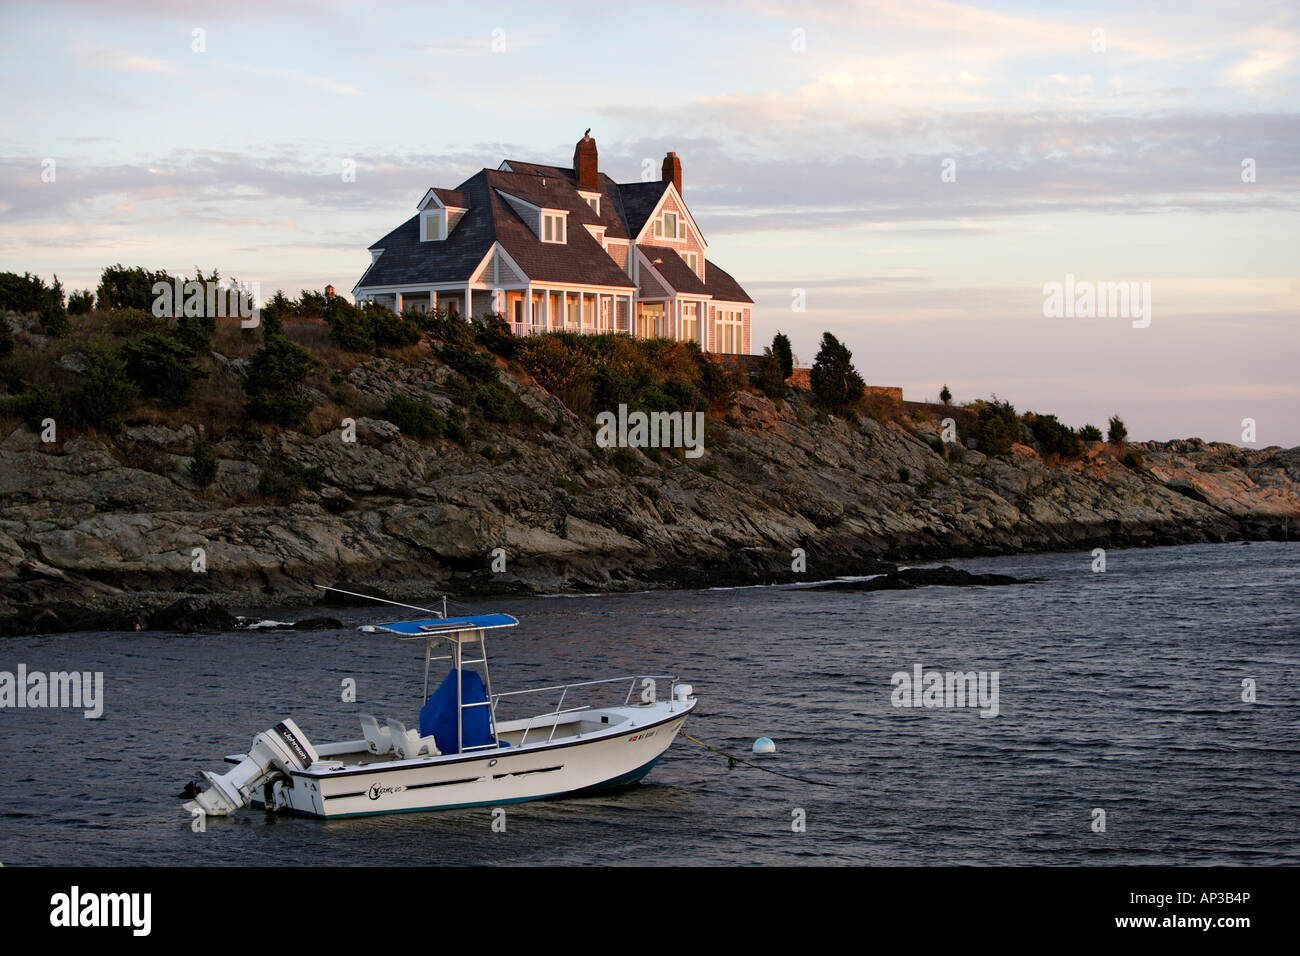 Exclusive homes on Ocean Drive in Newport, Rhode Island, United States of Ameica, USA - Stock Image